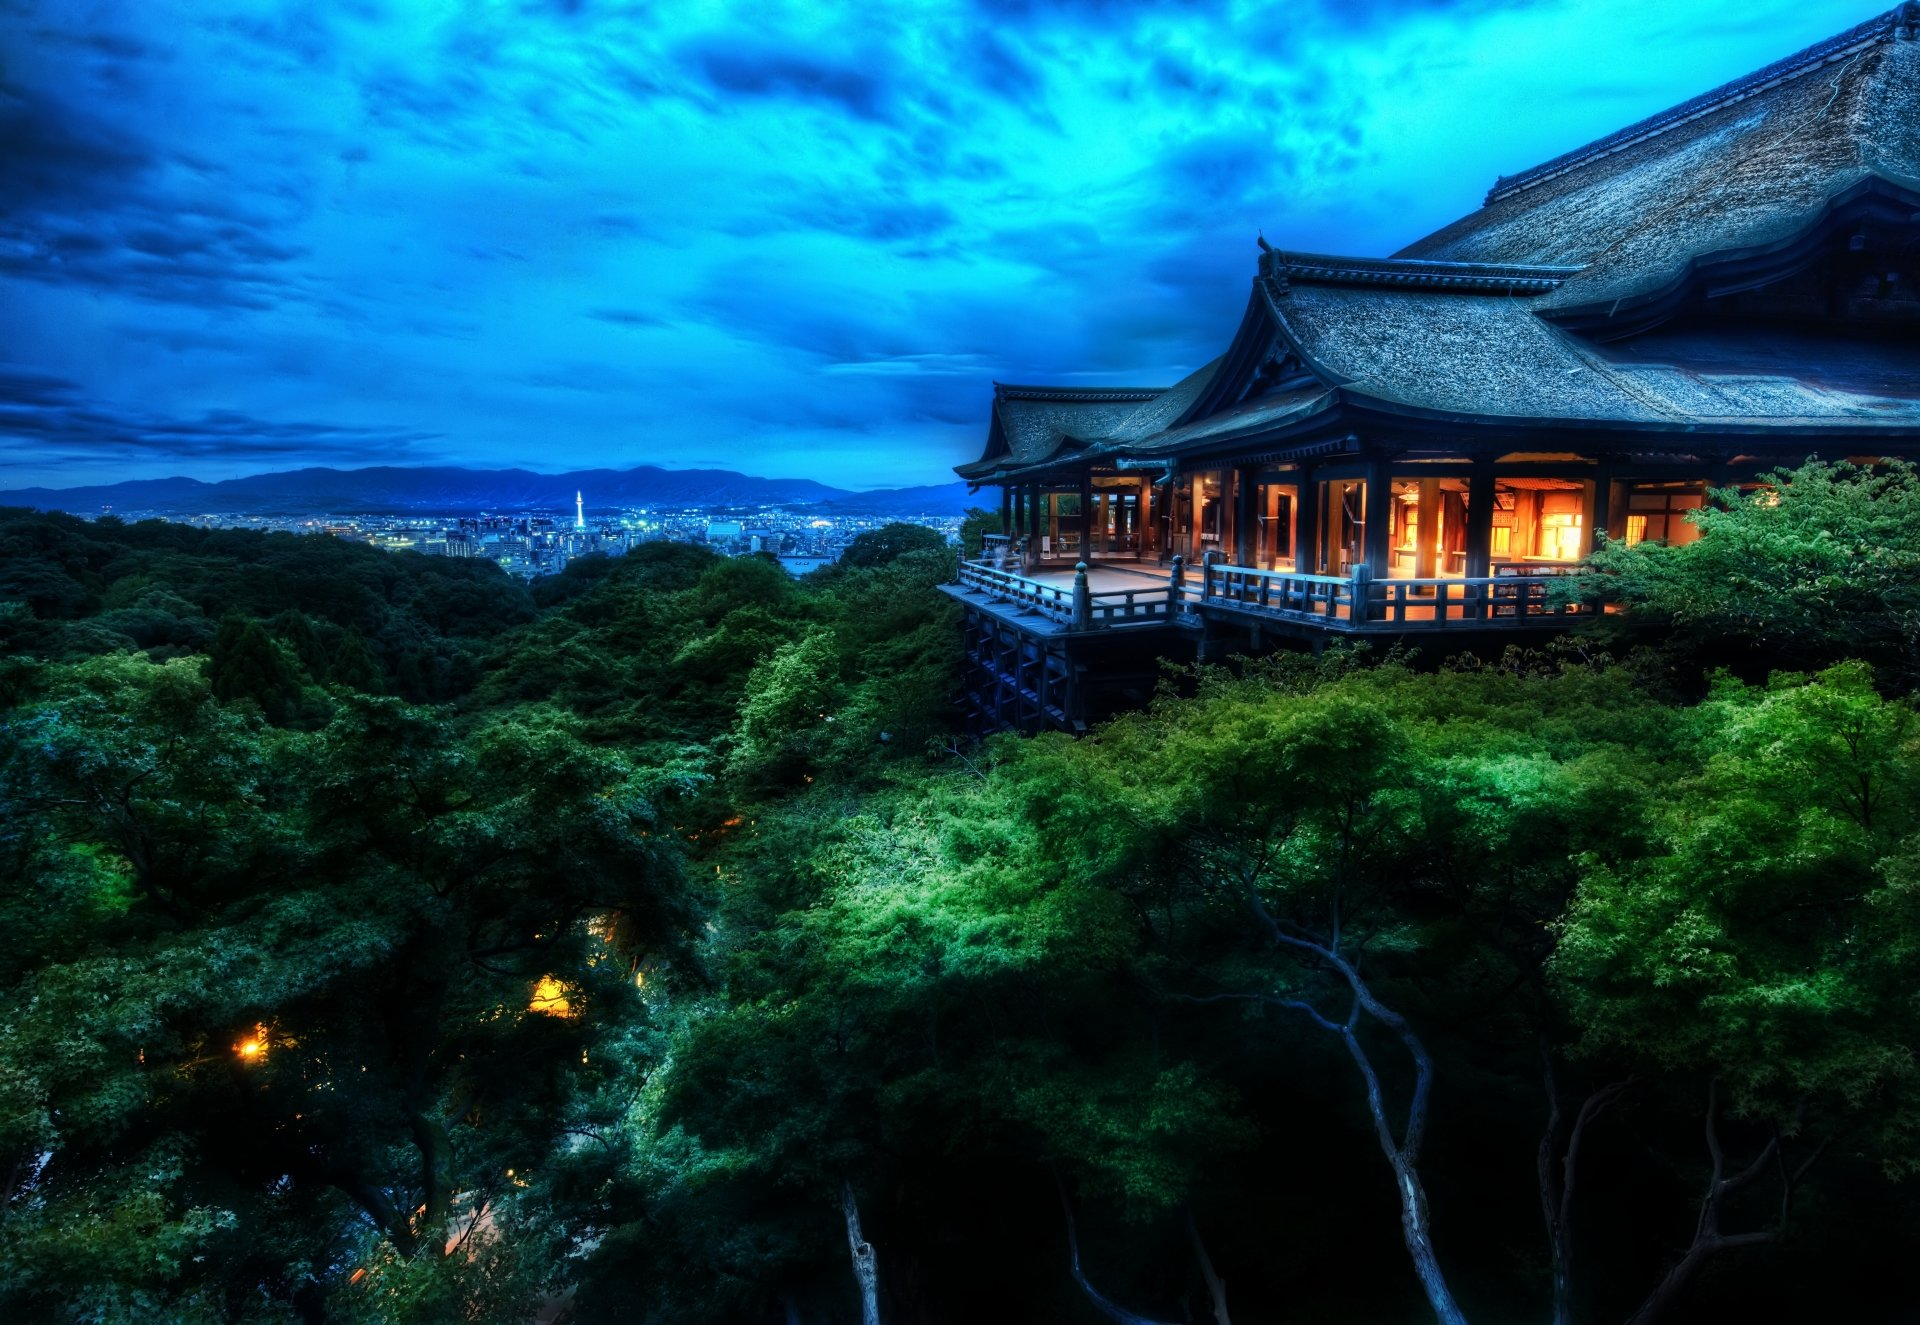 Religious - Kiyomizu-dera  Tree Japan Japanese Night Architecture Temple Religious Buddhism Kyoto Buddhist Temple Otowa-san Kiyomizu-dera Wallpaper